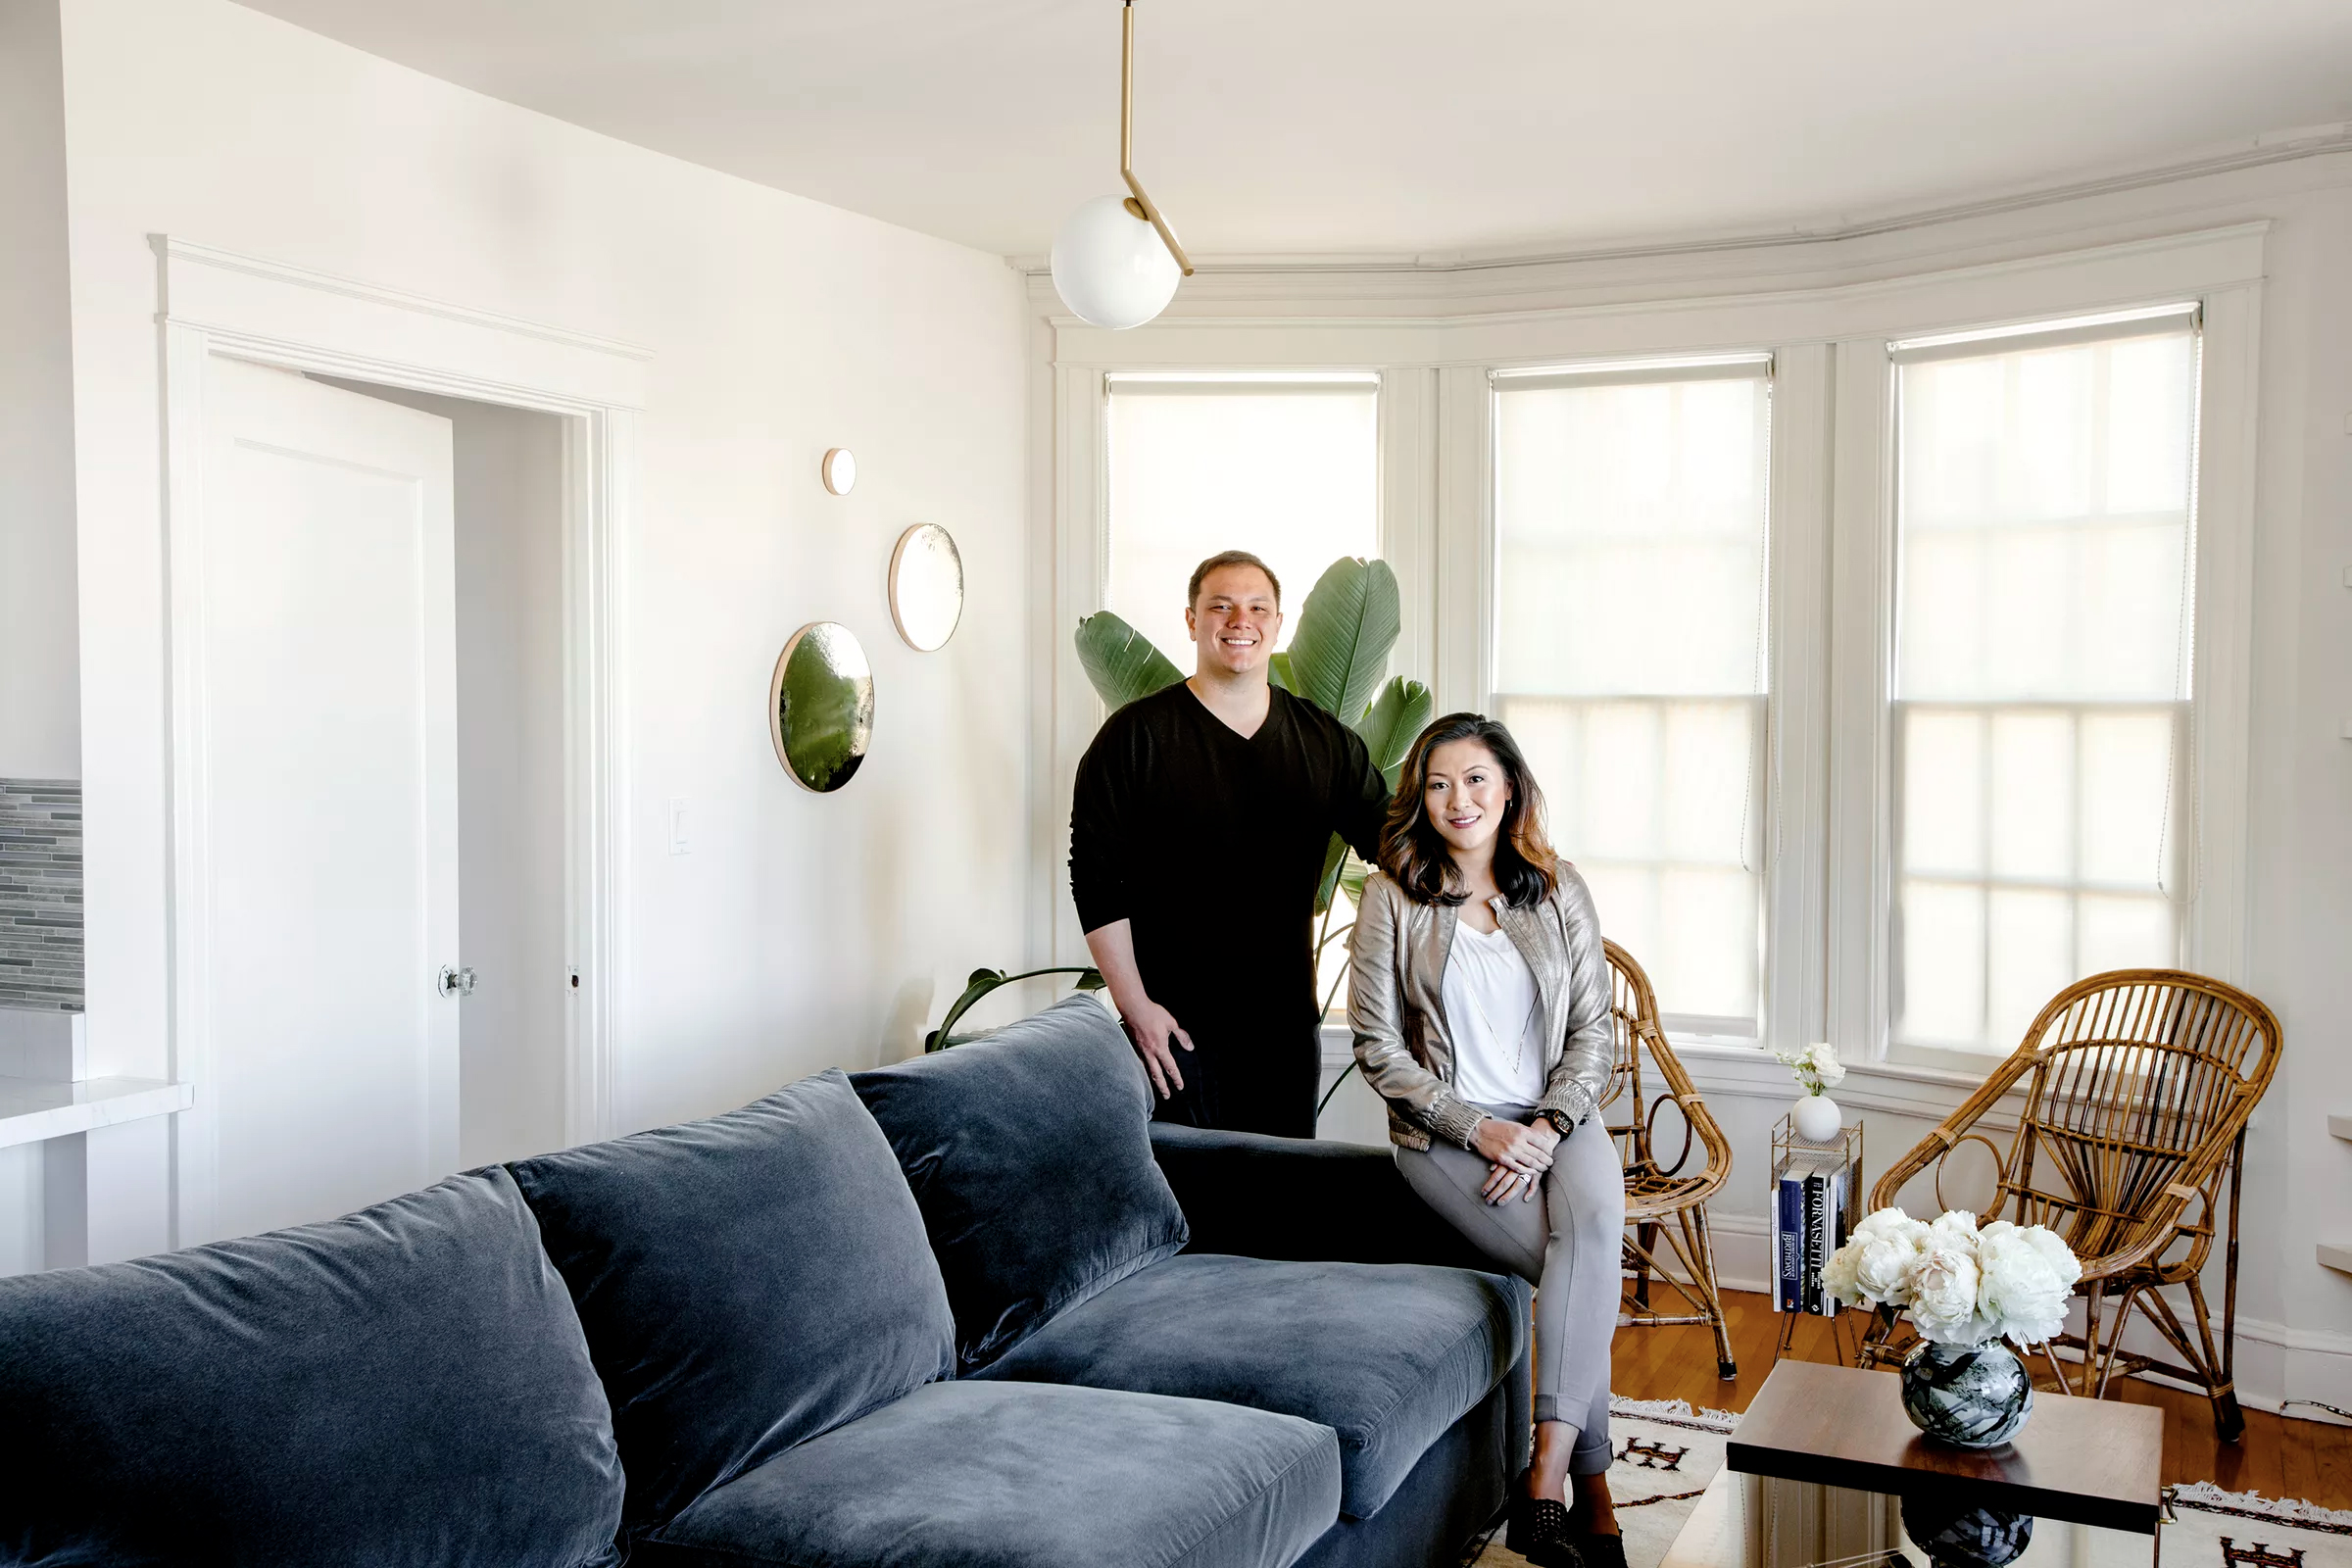 Niles Lichtenstein and Alicia Cheung Lichtenstein at home. When the couple got together, they opened a joint account to use for redecorating the apartment. The sofa is from  Crate & Barrel , the rattan chairs are from  Blue Ocean Traders , the coffee table is vintage and from  Donny O Antiques . The  Moon mirrors  are by artist Heather Palmer and the  1C pendant  from Flos by Michael Anastassiades.